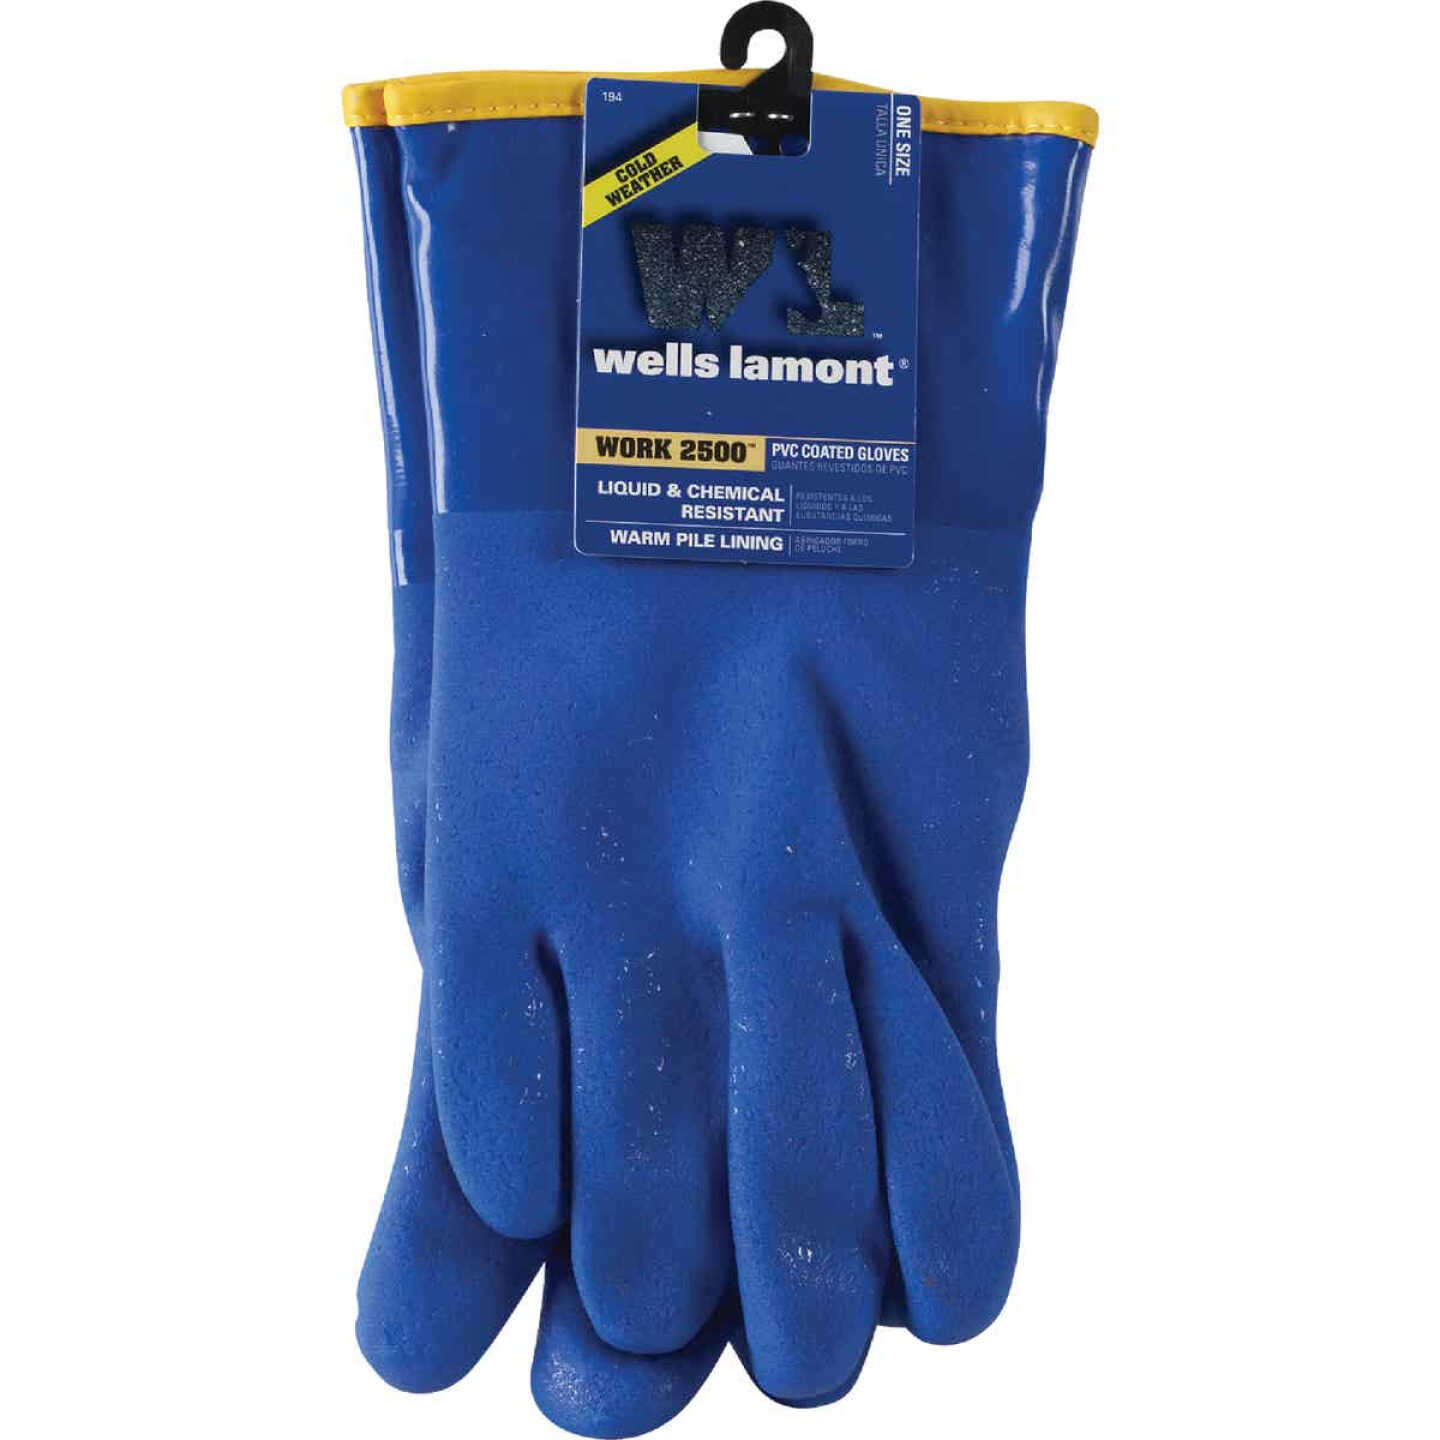 Wells Lamont Men's 1 Size Fits All Chemical Resistant PVC Coated Glove Image 2